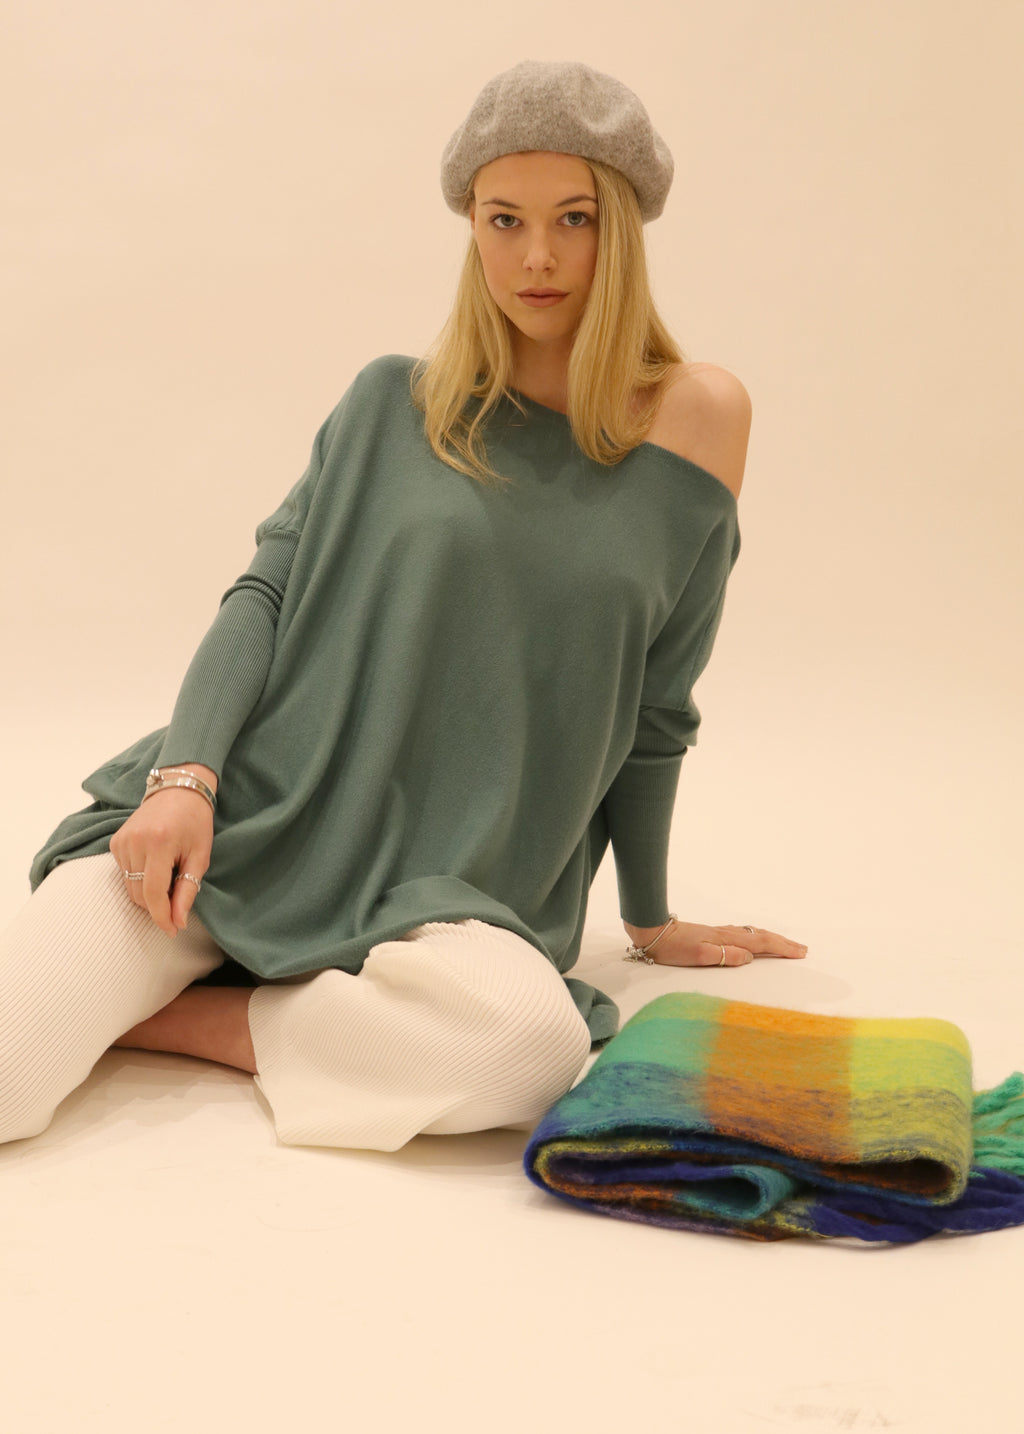 Amazing Knit Sweater in TEAL - SLIDE SHOW Amazing Jumper,MELBOURNE BASE, THE BEST KNIT JUMPER S005